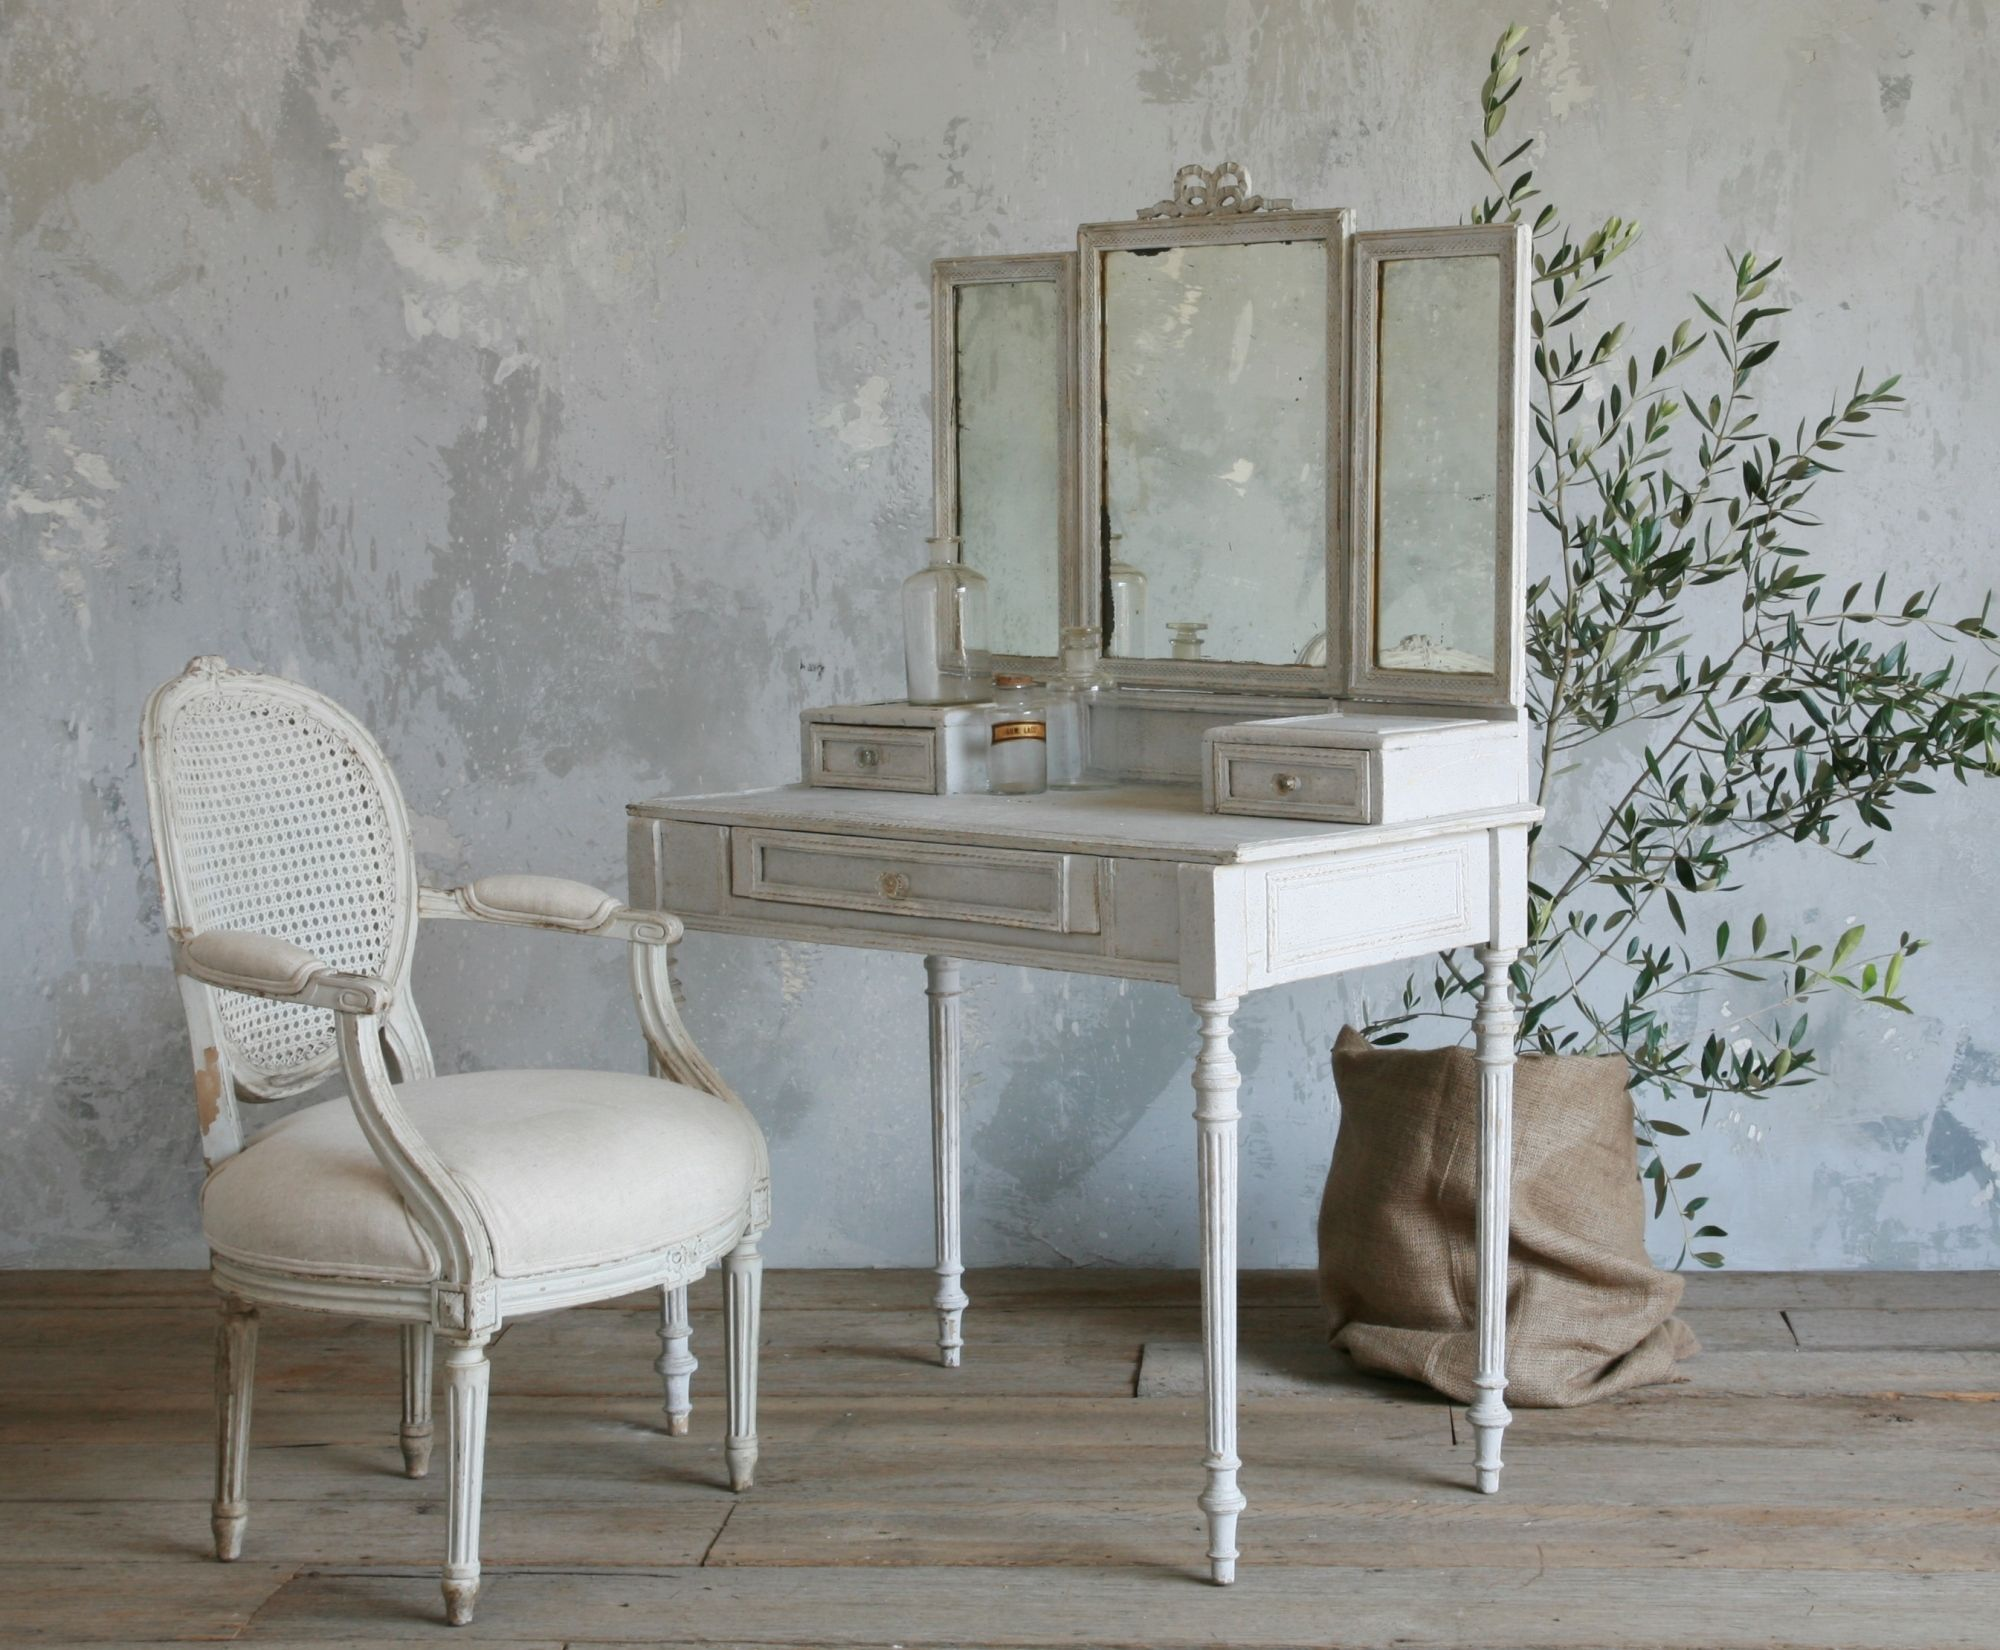 Mirrored Makeup Vanity | Mirrored Vanity Set | Dresser with Vanity Mirror